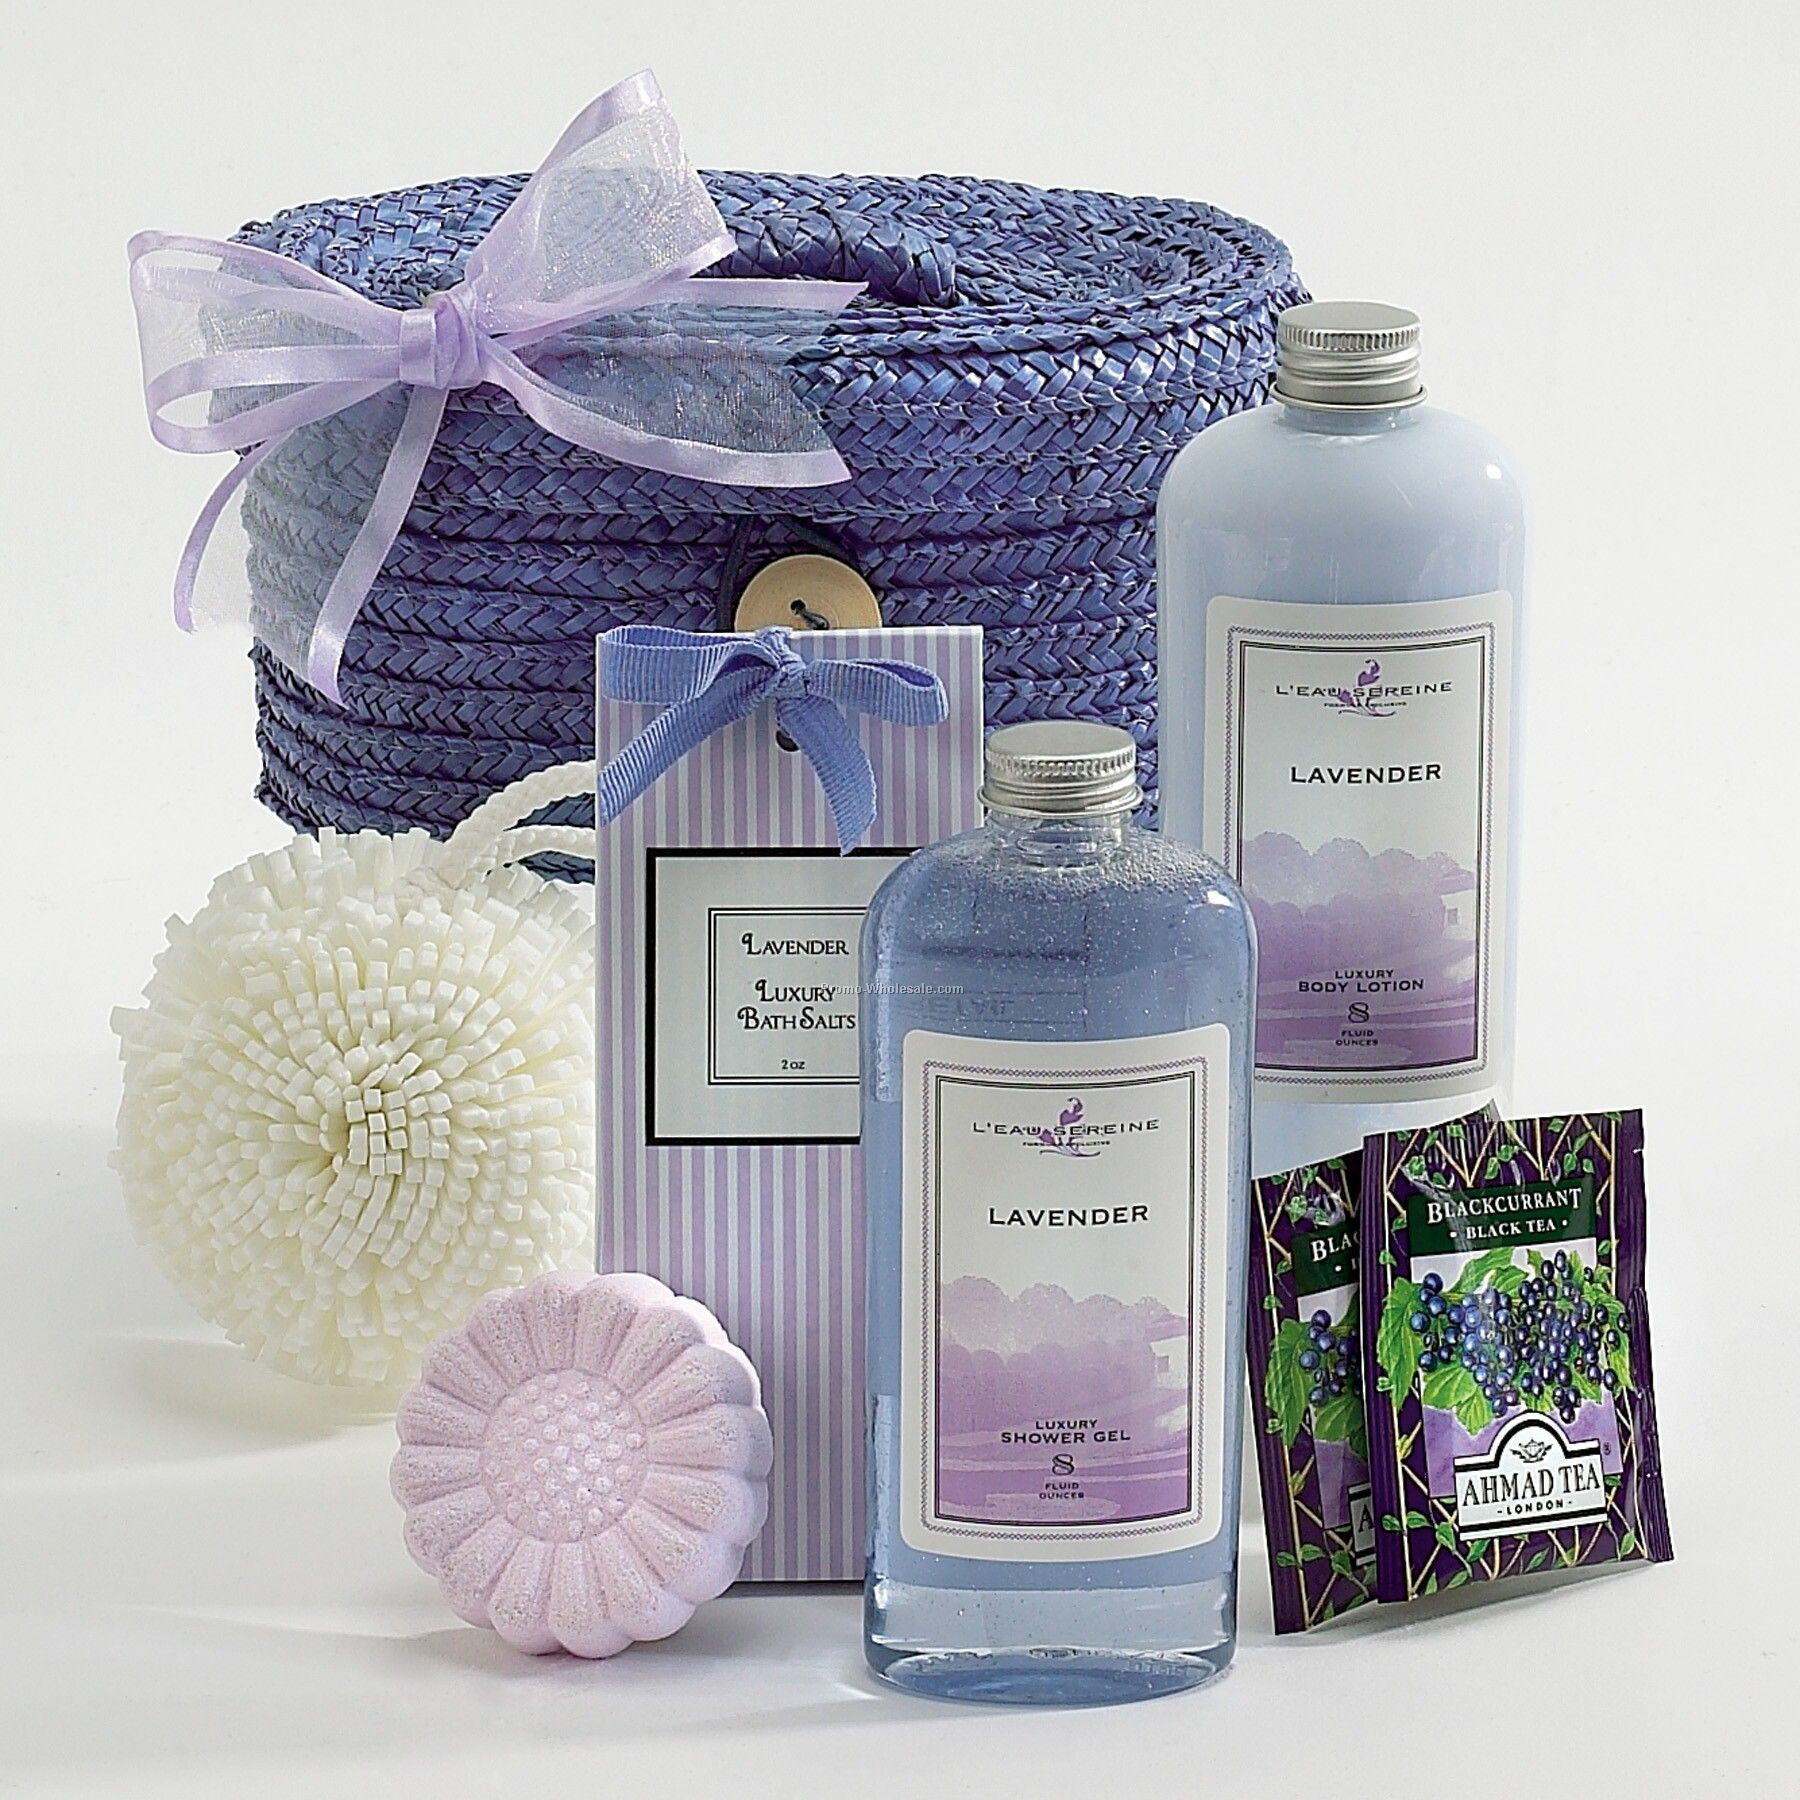 Luxurious Lavender Spa Gift Basket